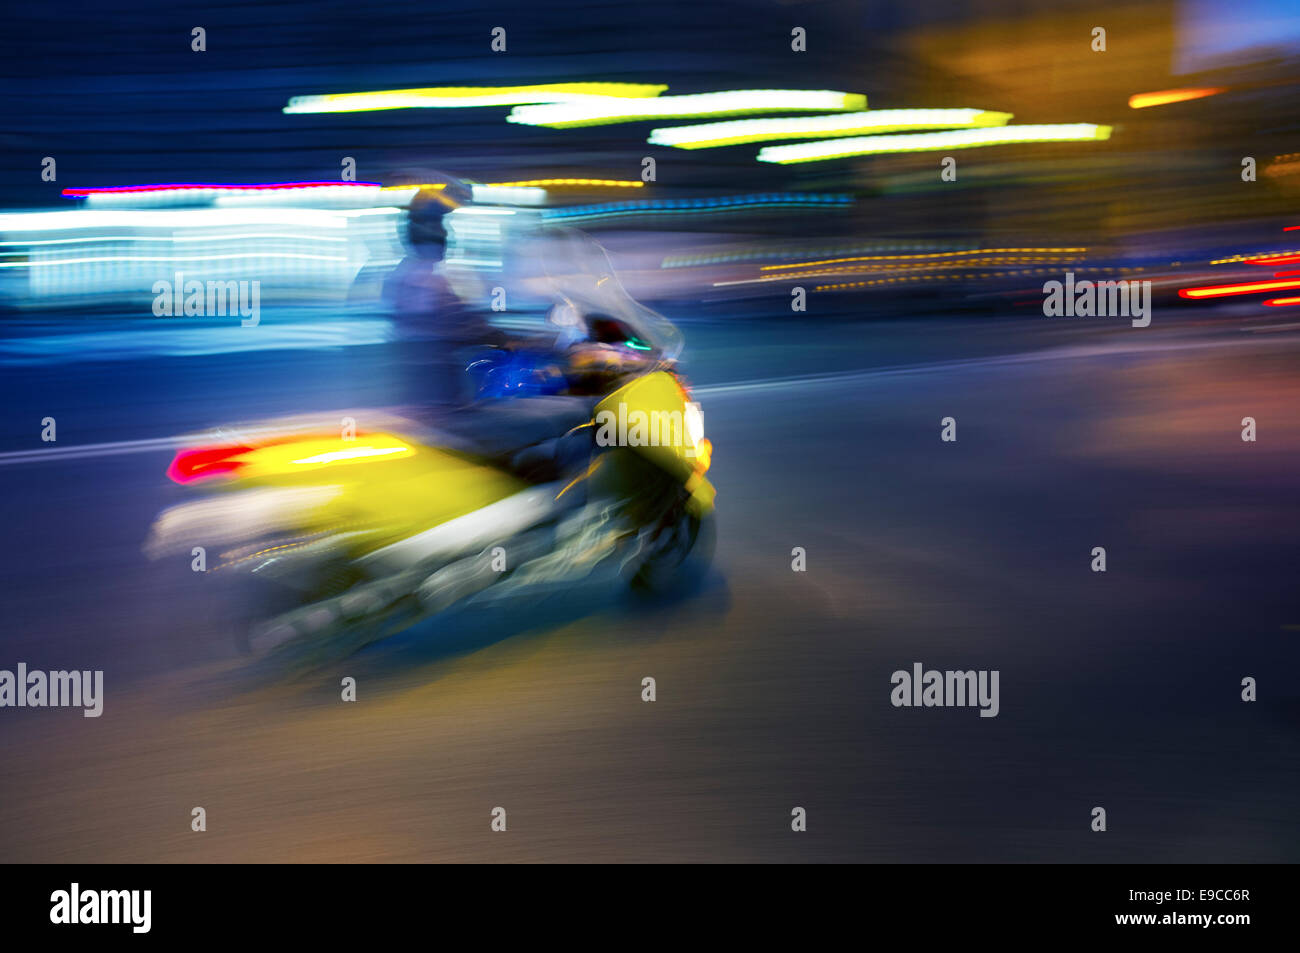 Abstract blurry image of a scooter driving at night. - Stock Image